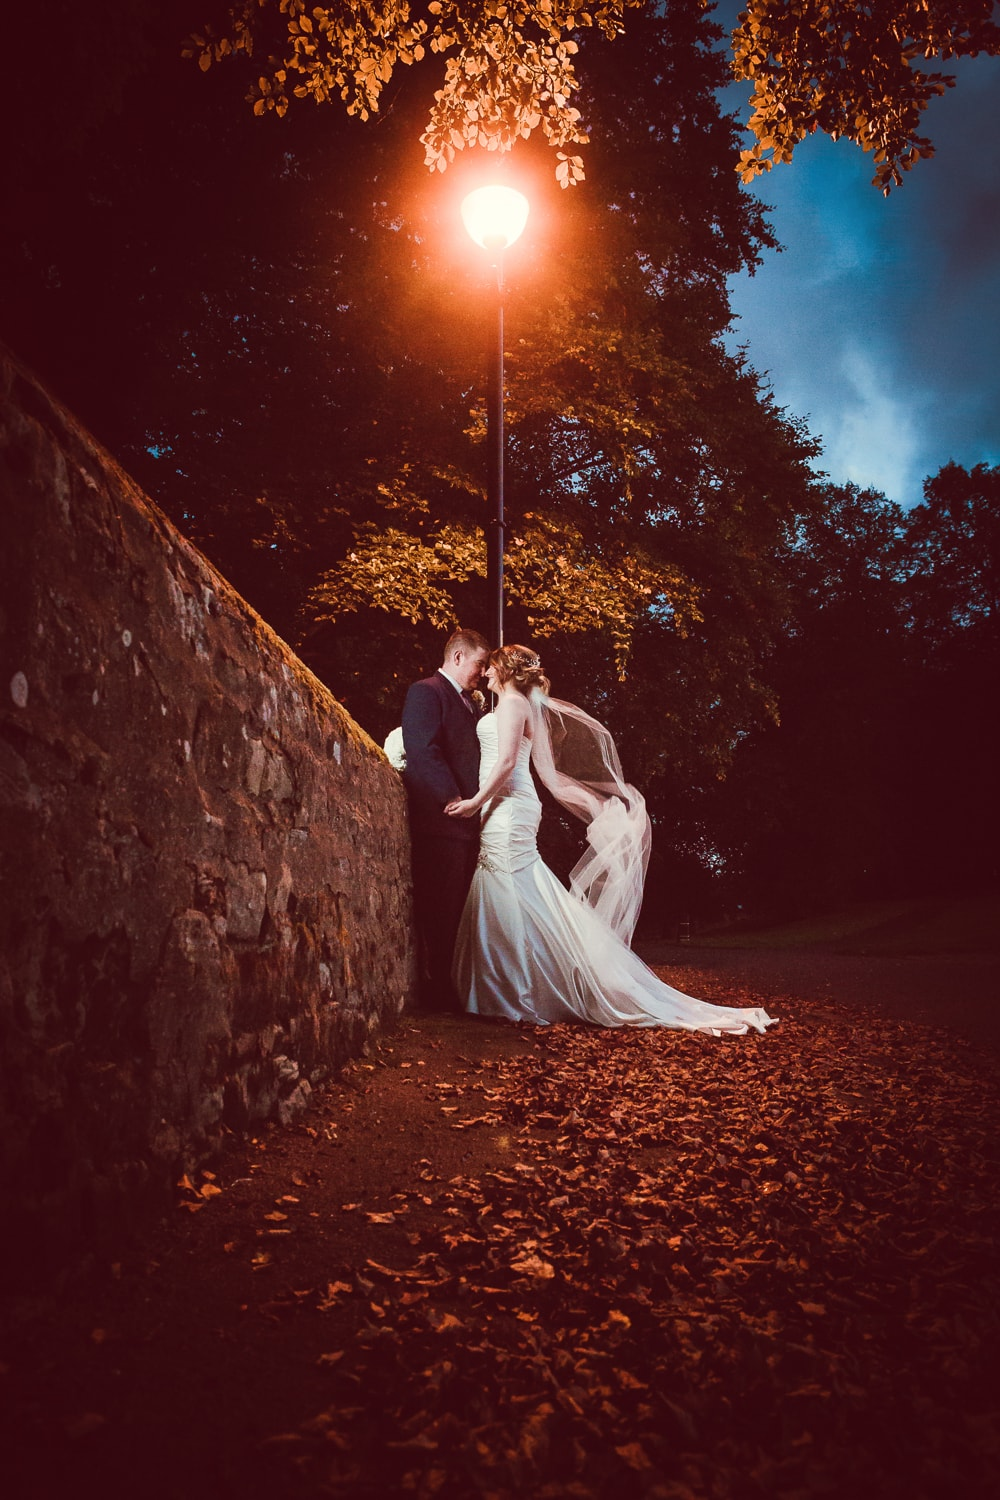 Hexham Abbey Wedding, lamppost at night